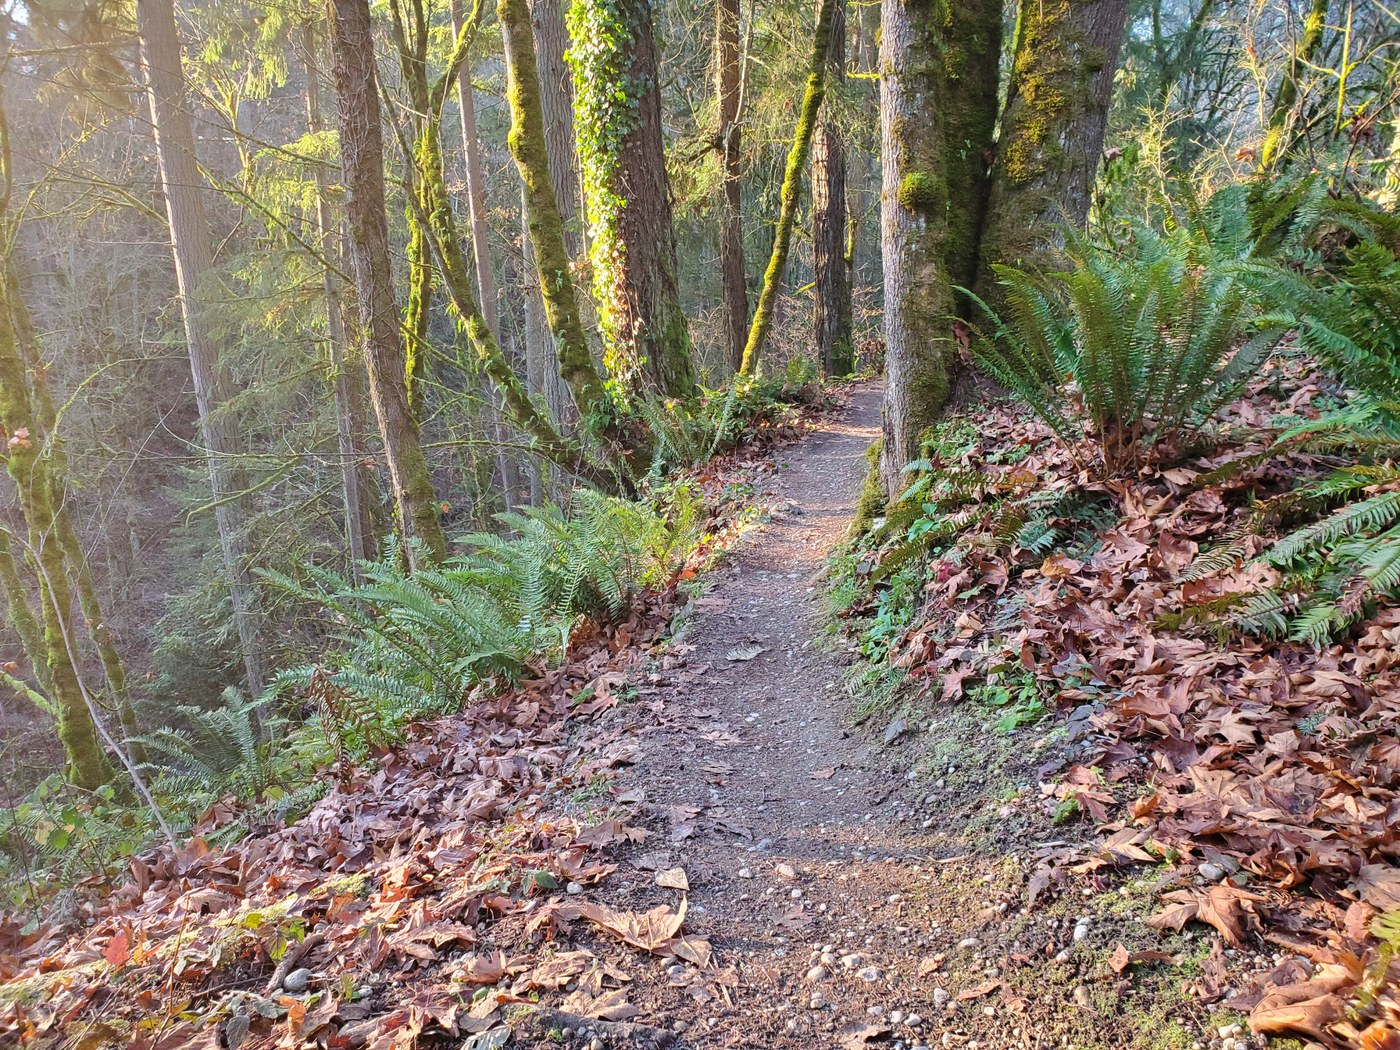 A section of trail covered in fall leaves. Photo by noirange.